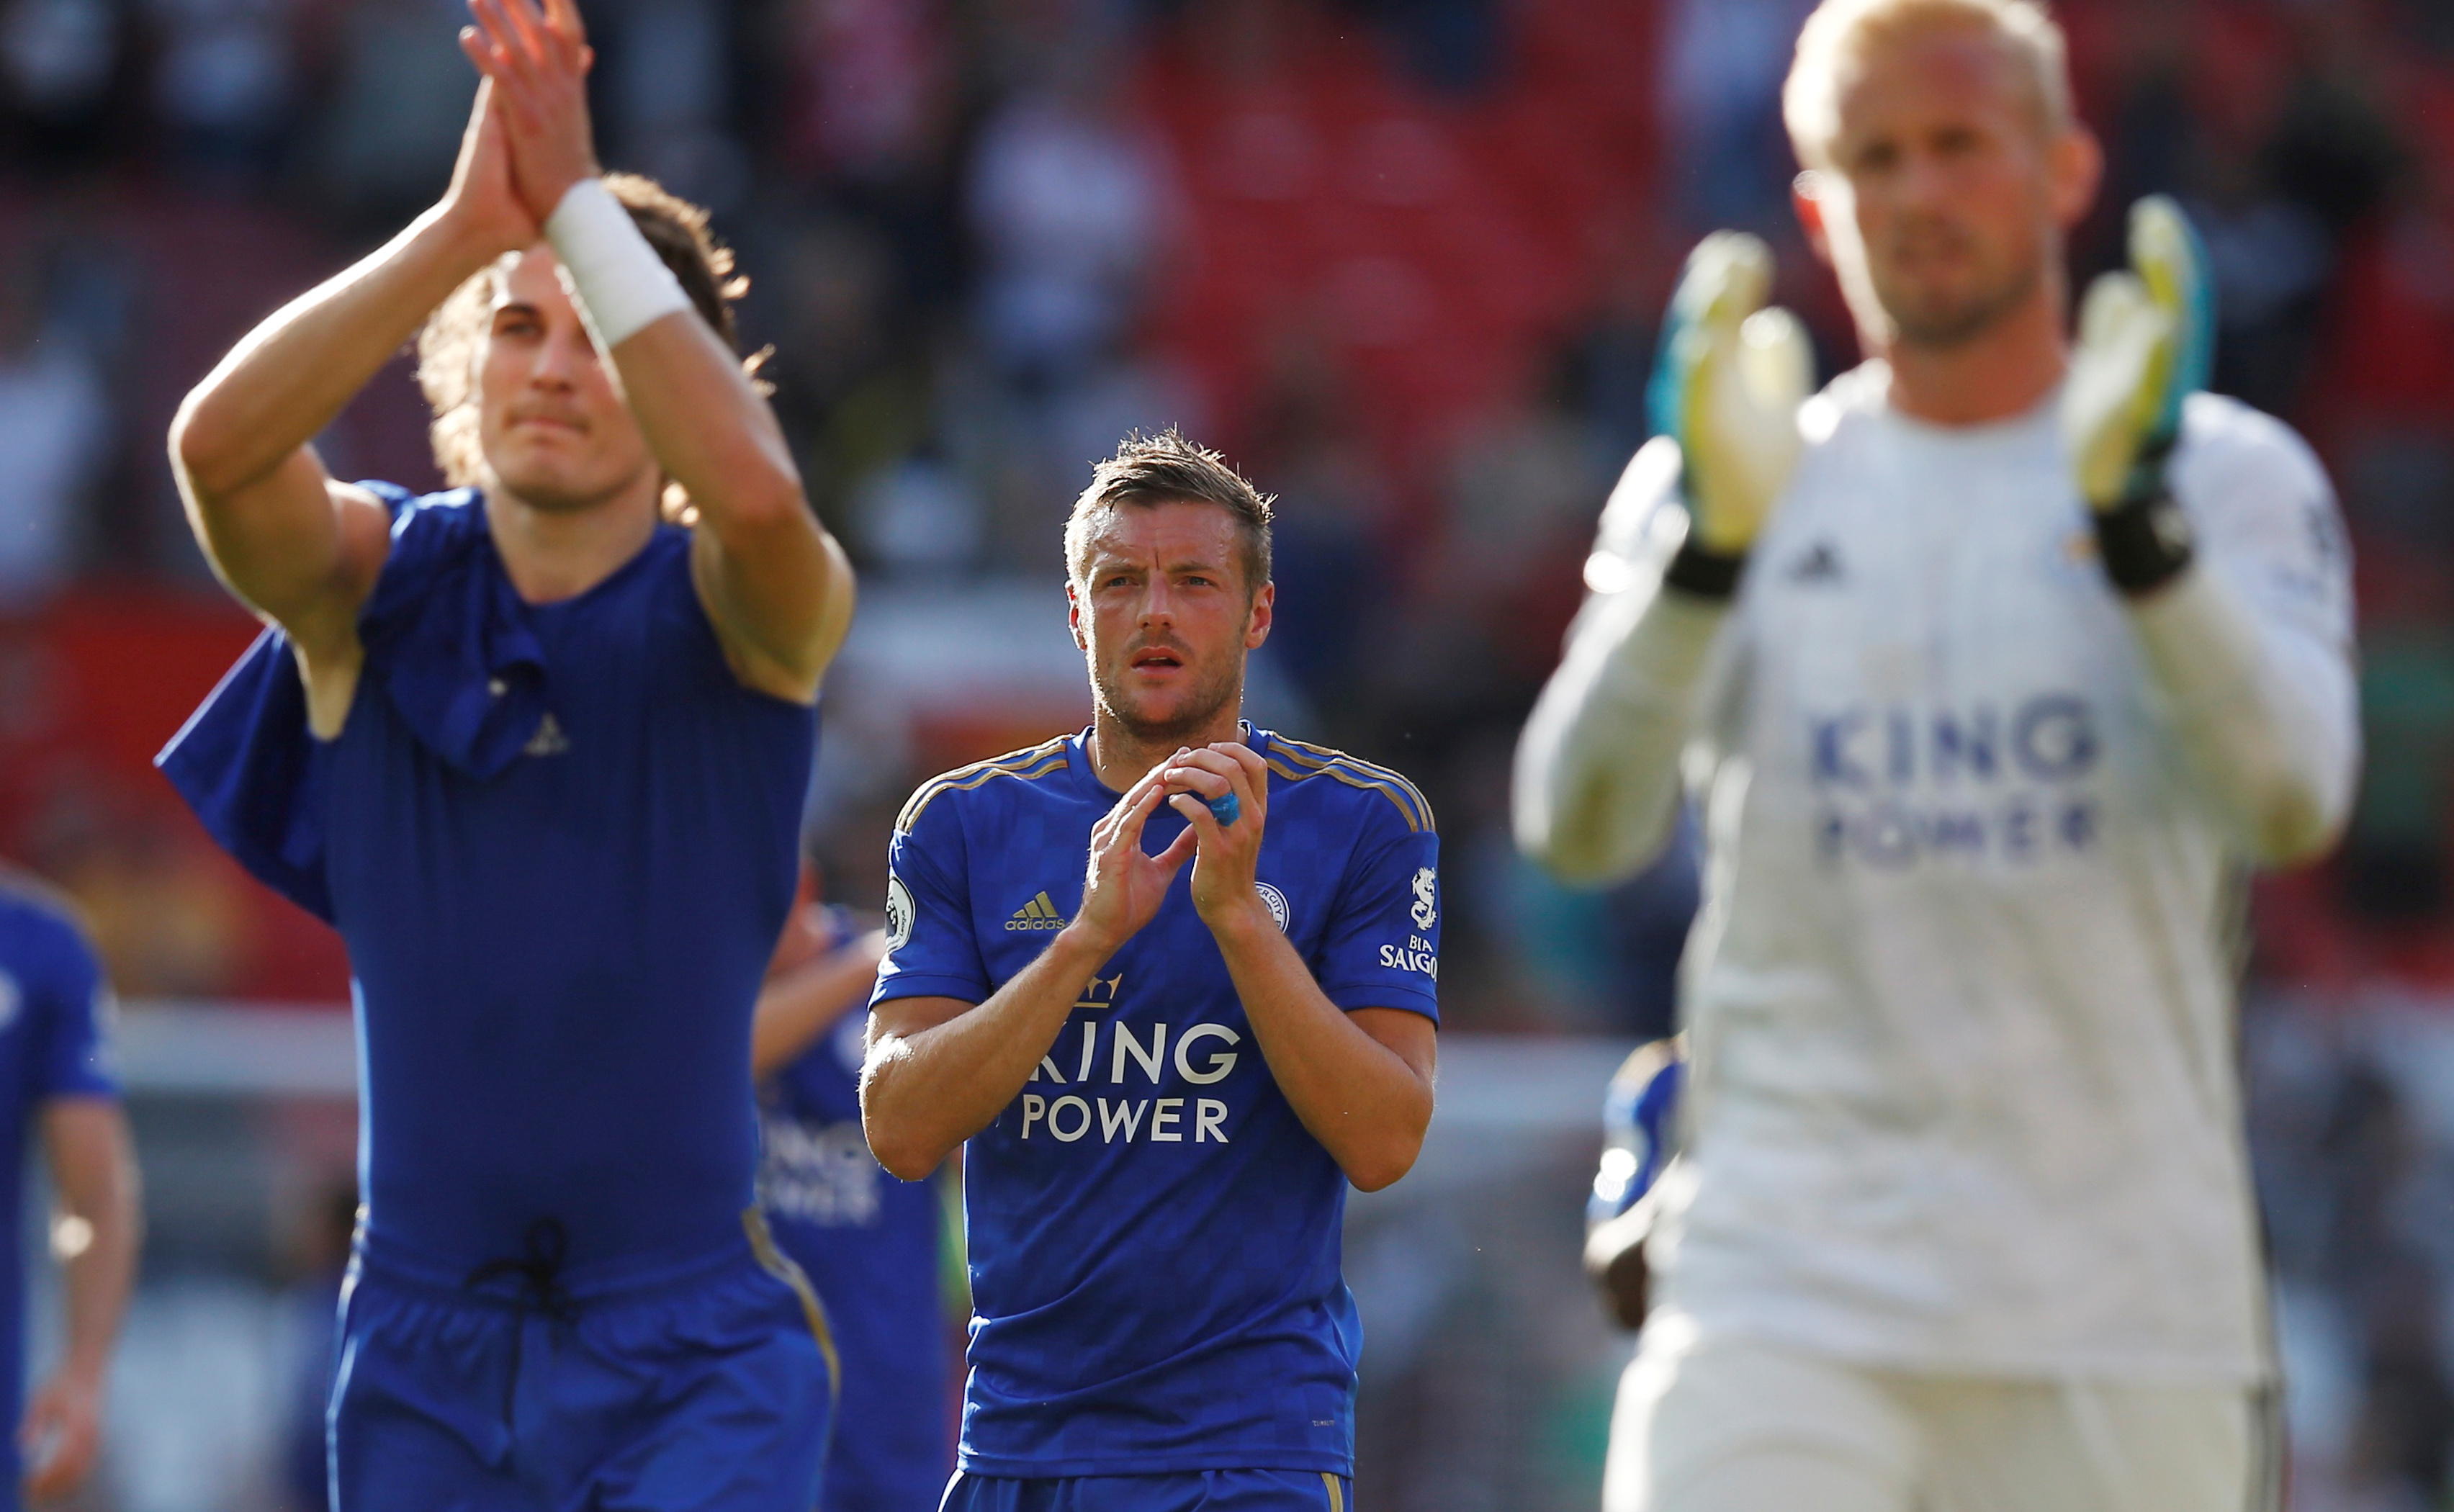 Leicester City FC Squad 2019: Leicester City FC first team all players 2019/20